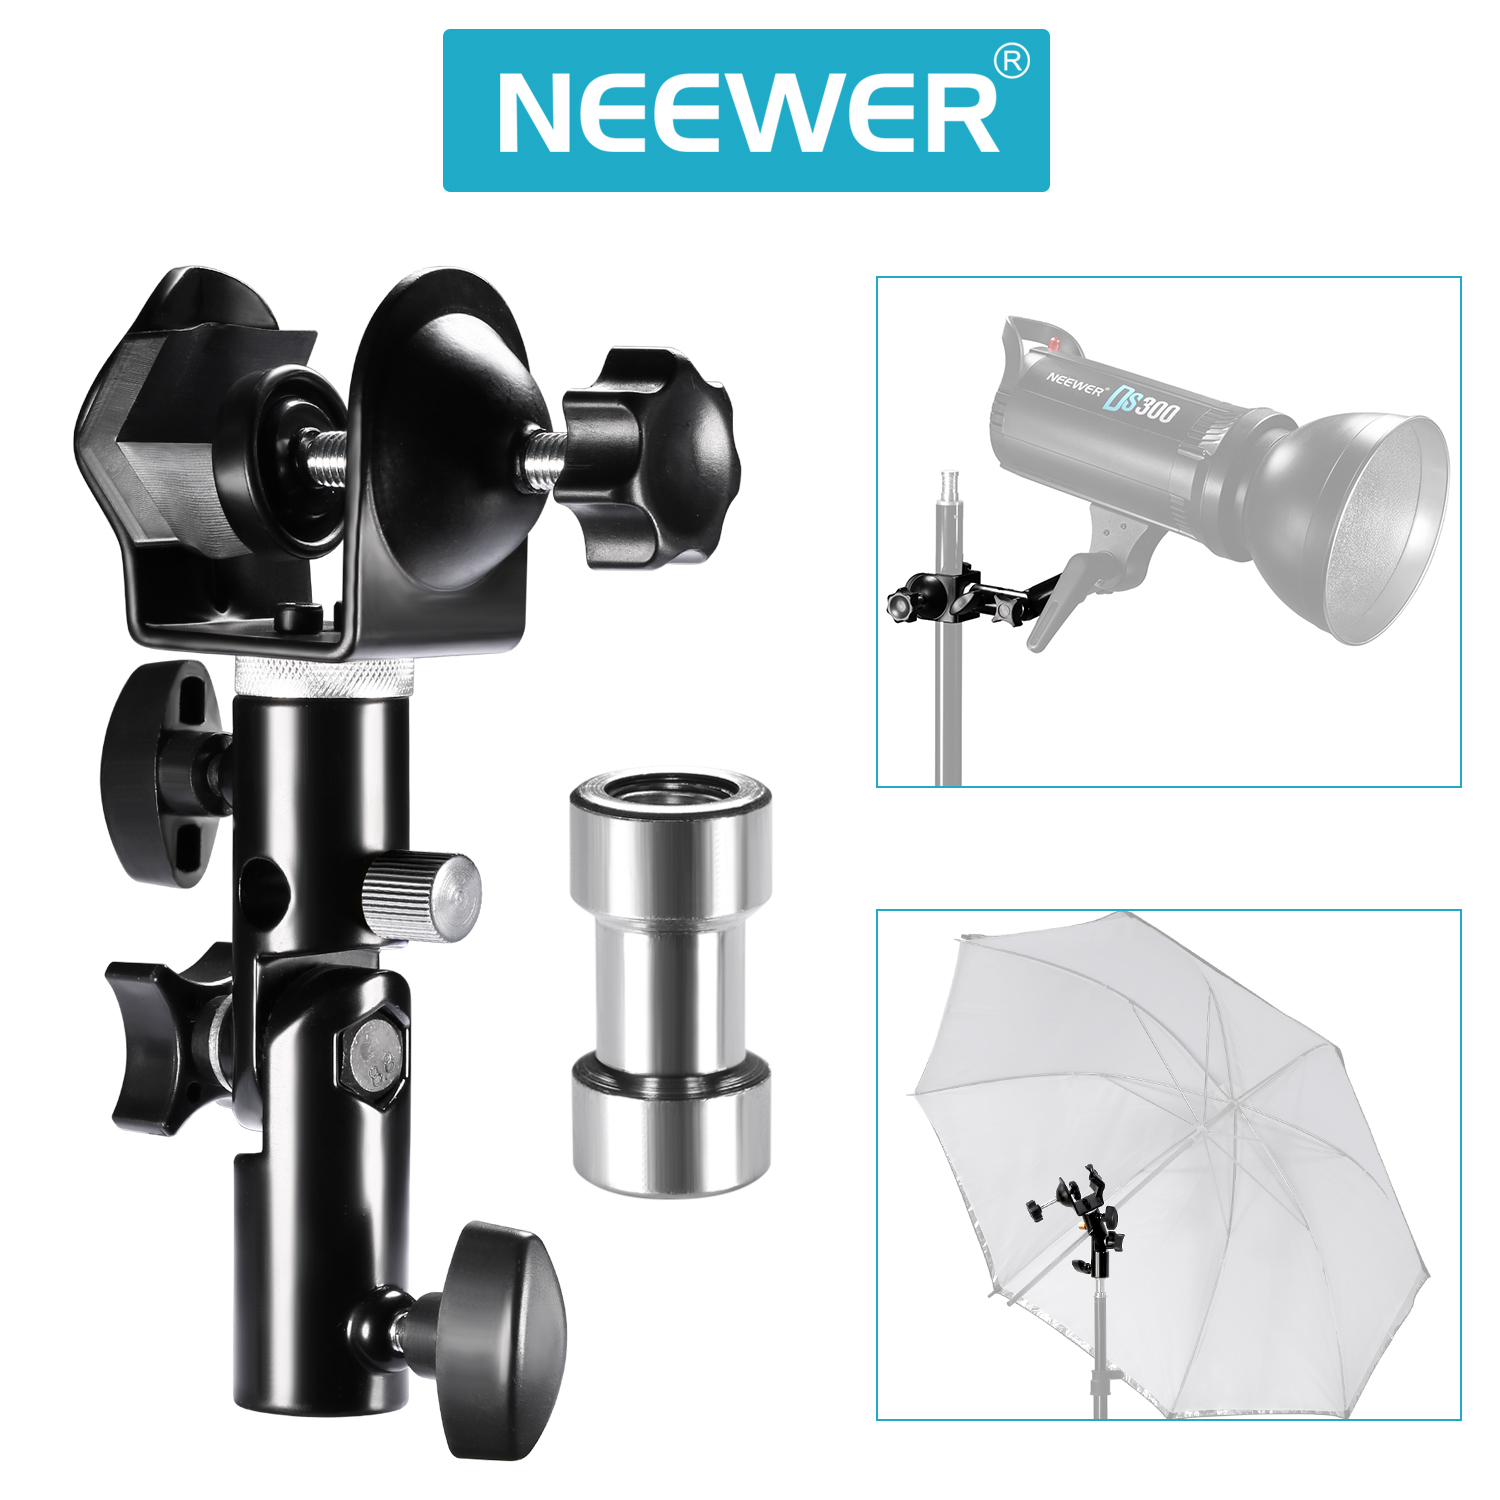 Neewer u clamp clip mount and bracket short adapter